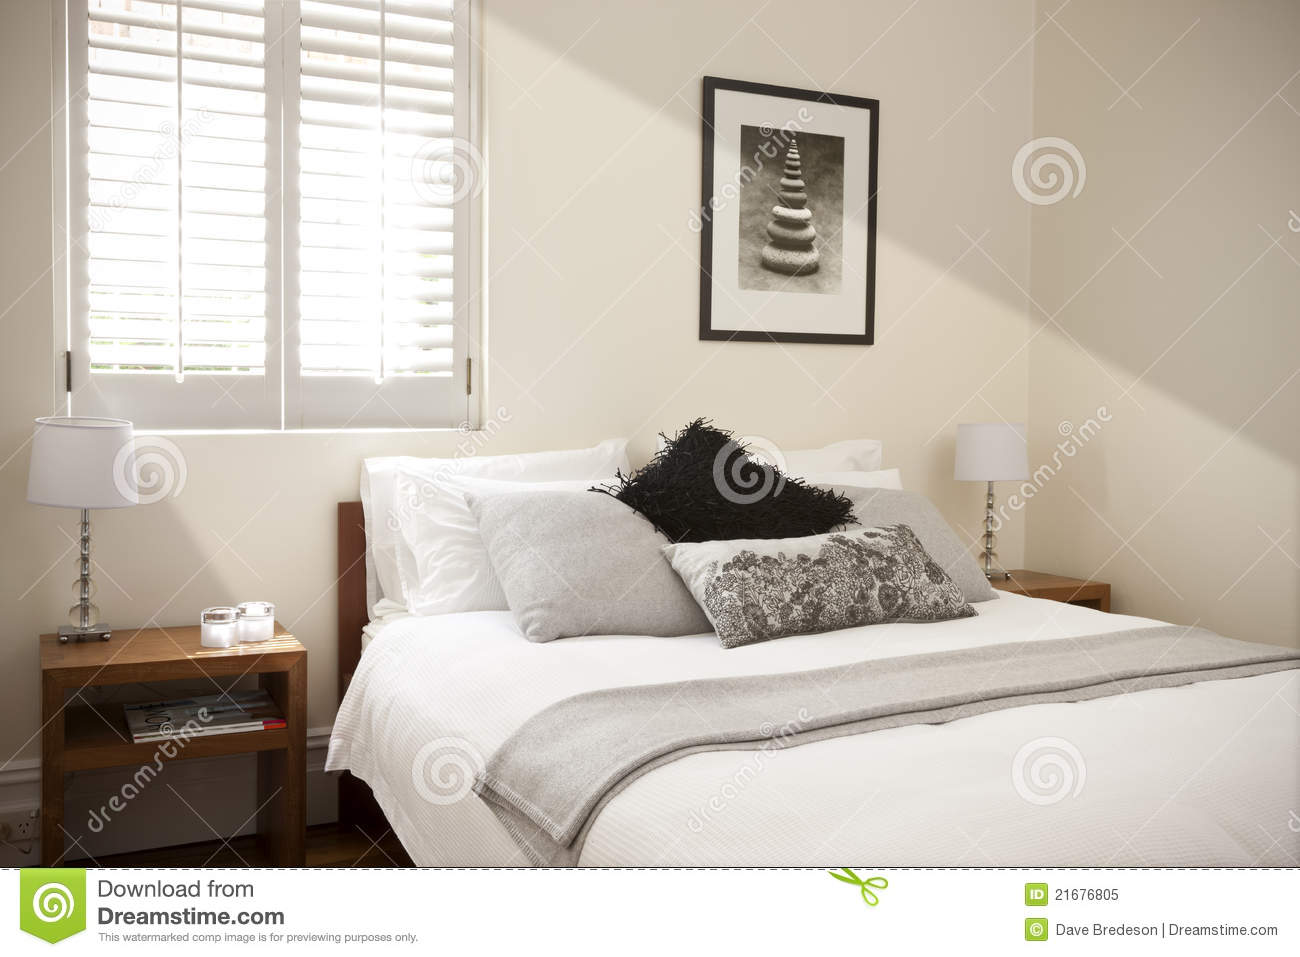 Bedroom Bed Interior Light Stock Image Of Bright